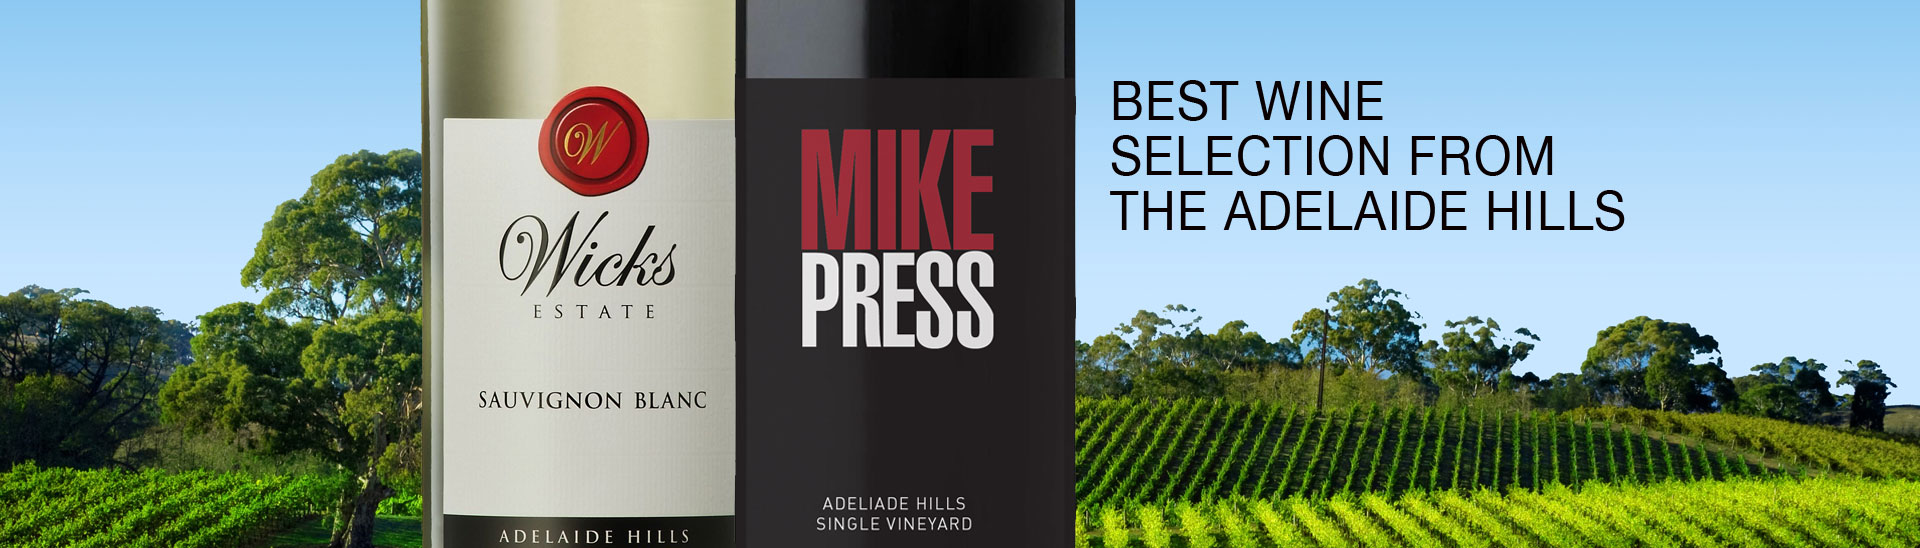 Best Wine Selection in the Adelaide Hills